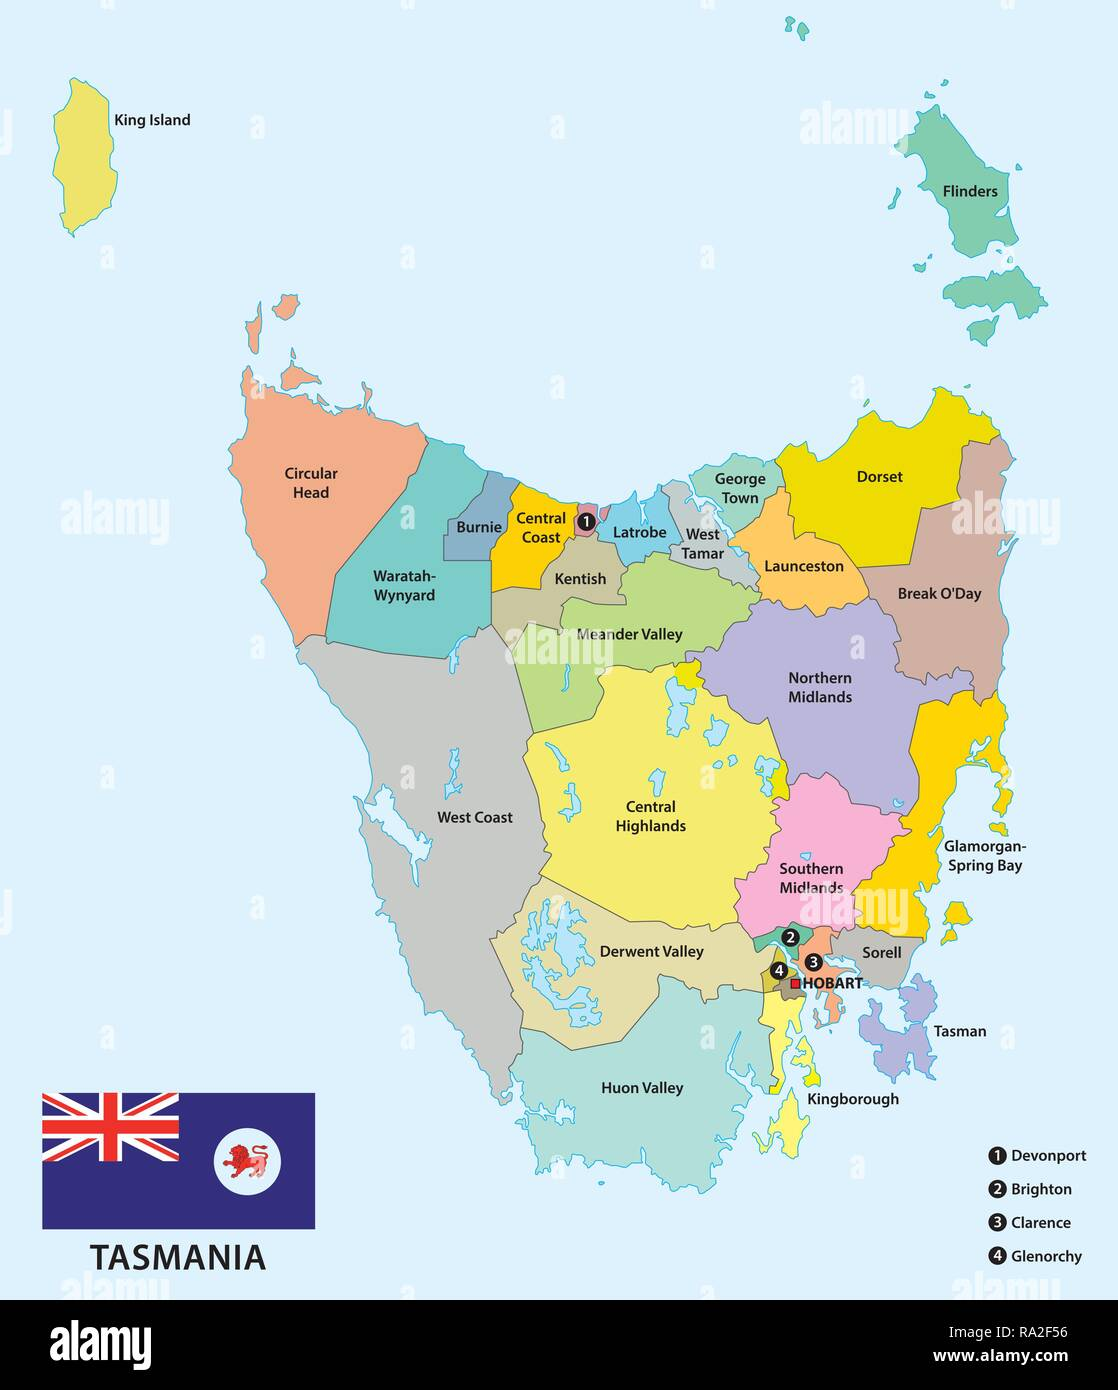 Administrative and political map of the 29 Local government areas of Tasmania with flag, Australia - Stock Image